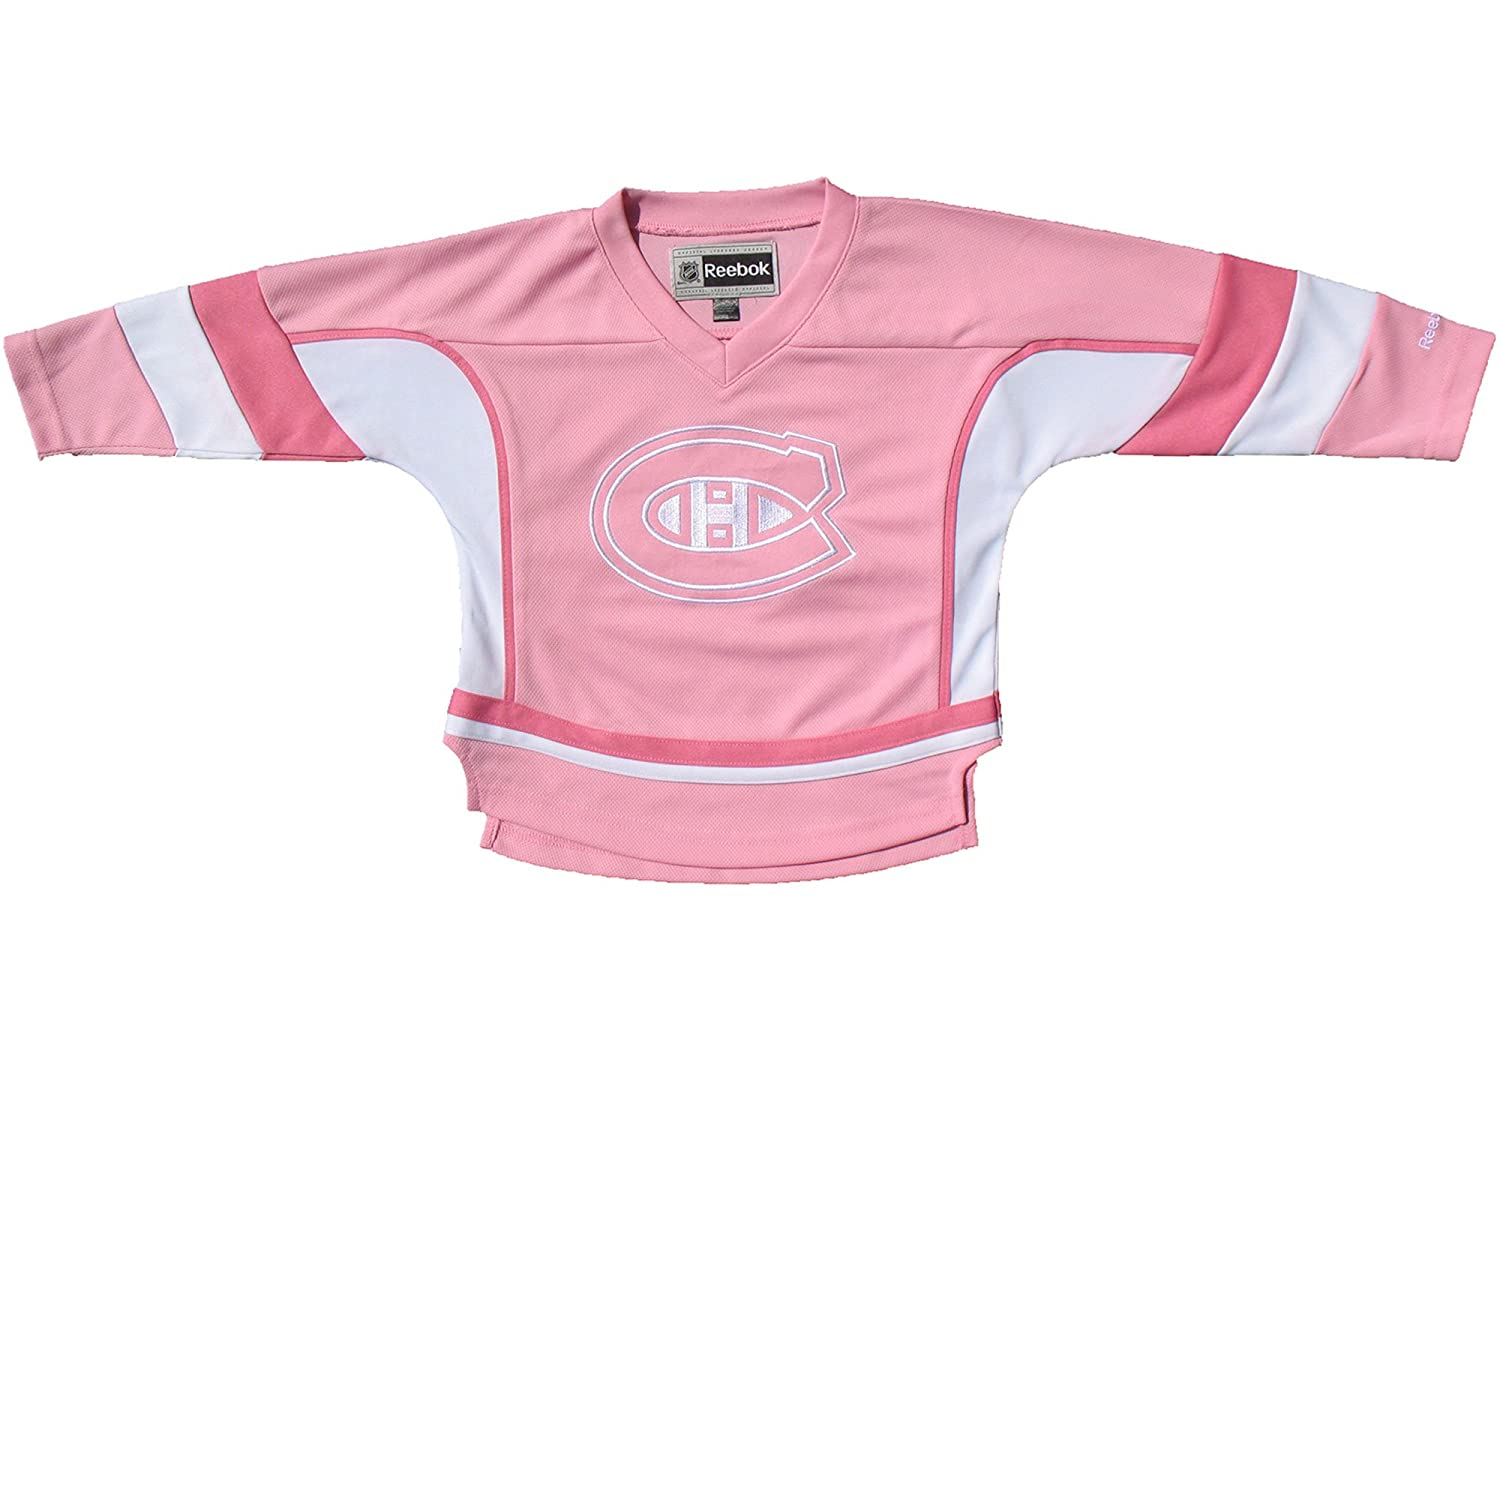 Montreal Canadiens Toddler Girls Pink Fashion Jersey - Size 2T Reebok